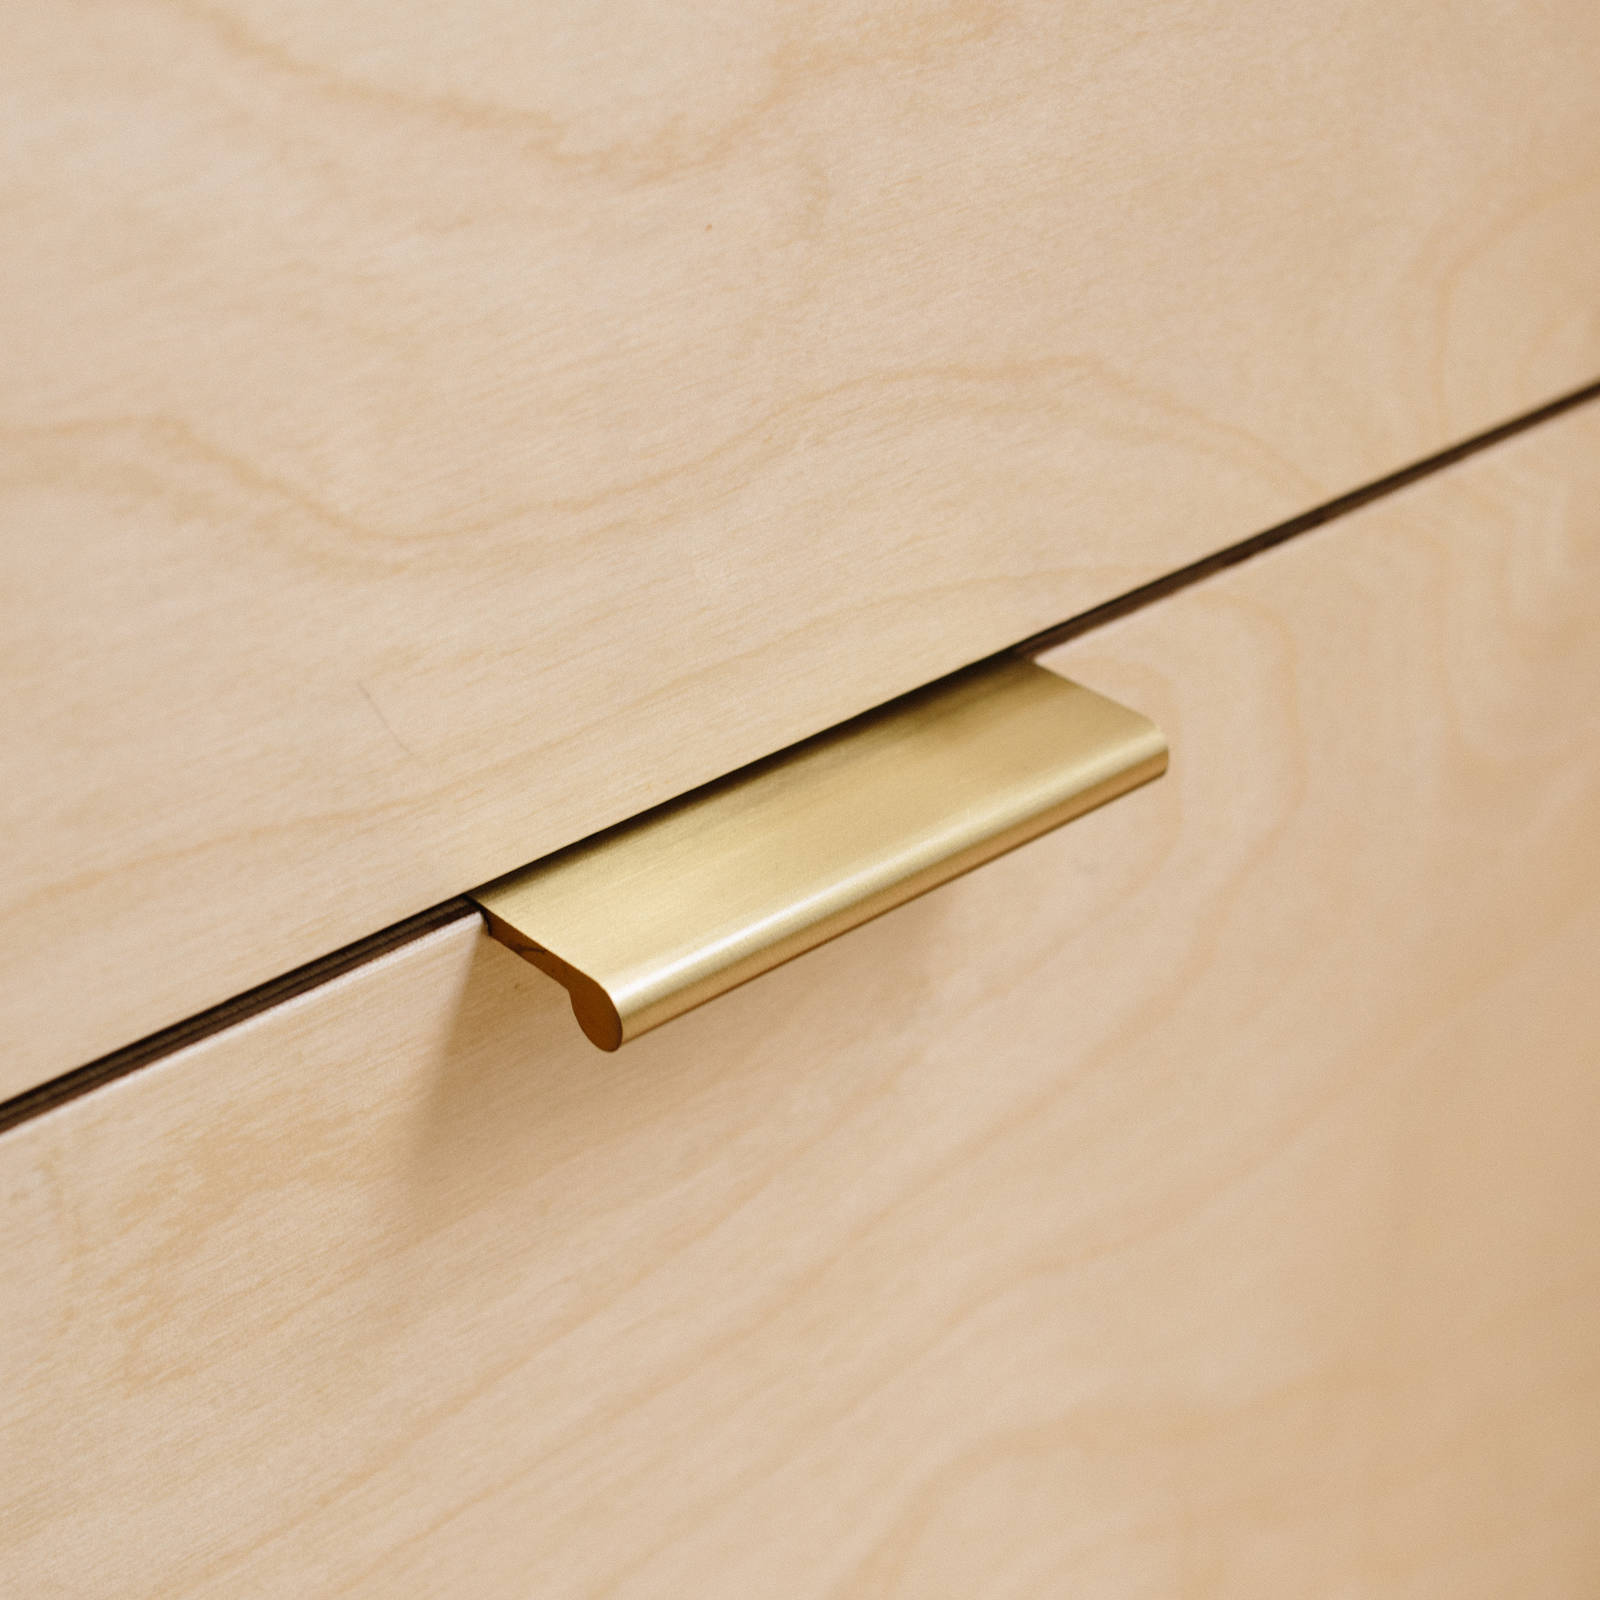 Ultimate-Guide-To-Cabinet-Handles-Plykea-02